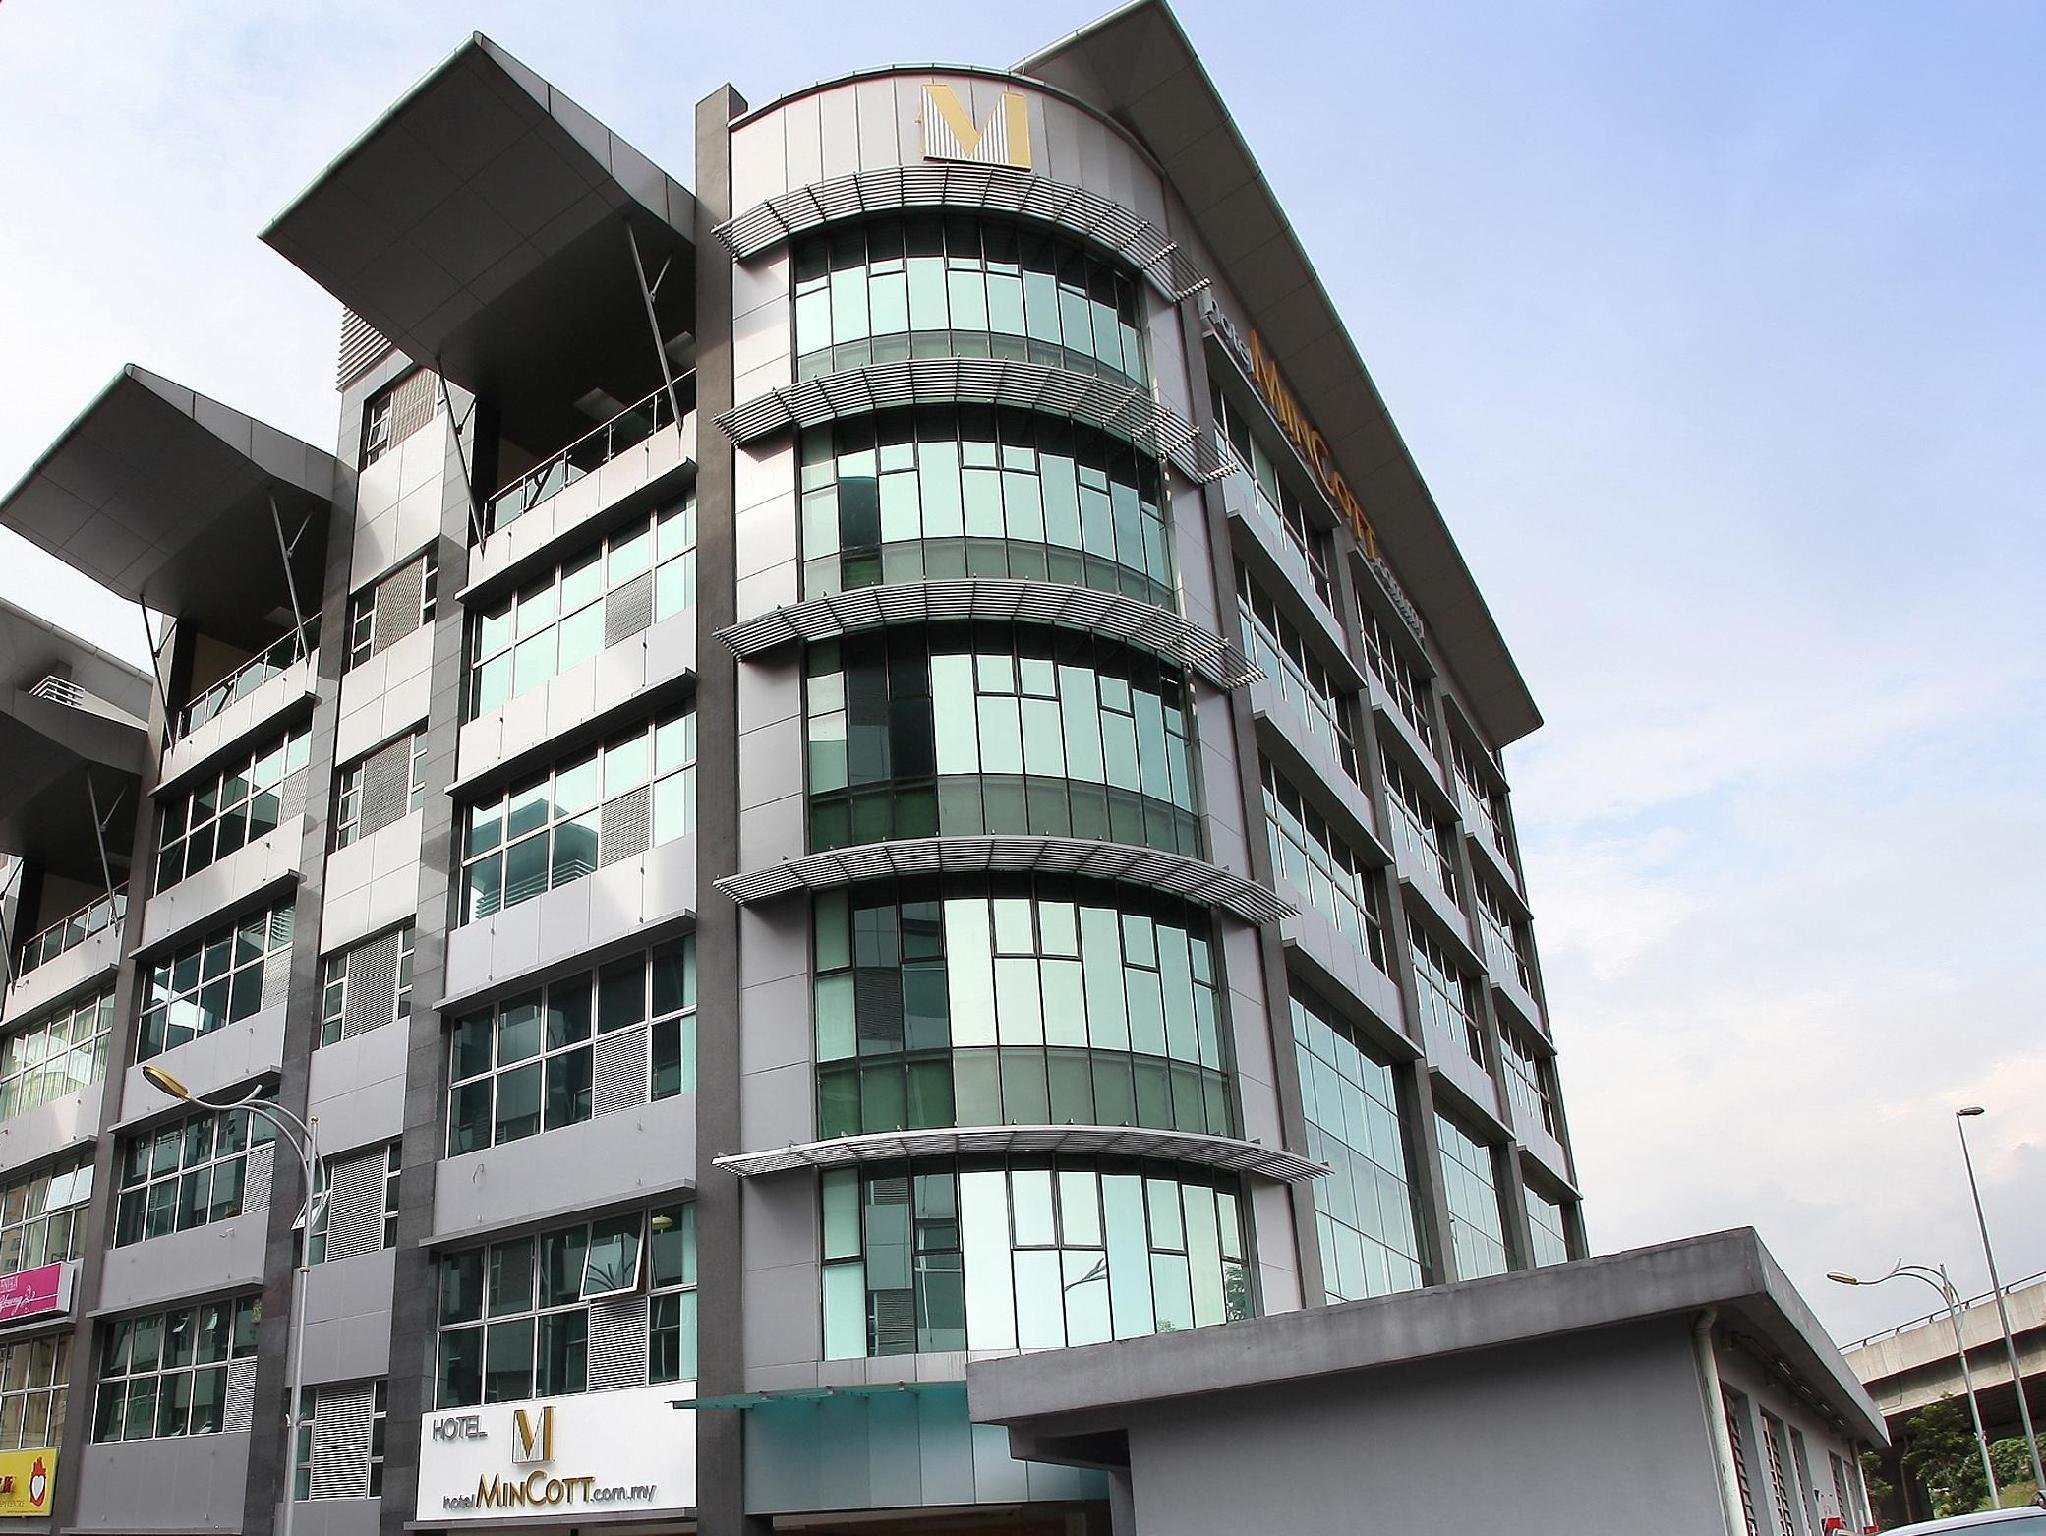 Hotel Mincott - Hotels and Accommodation in Malaysia, Asia